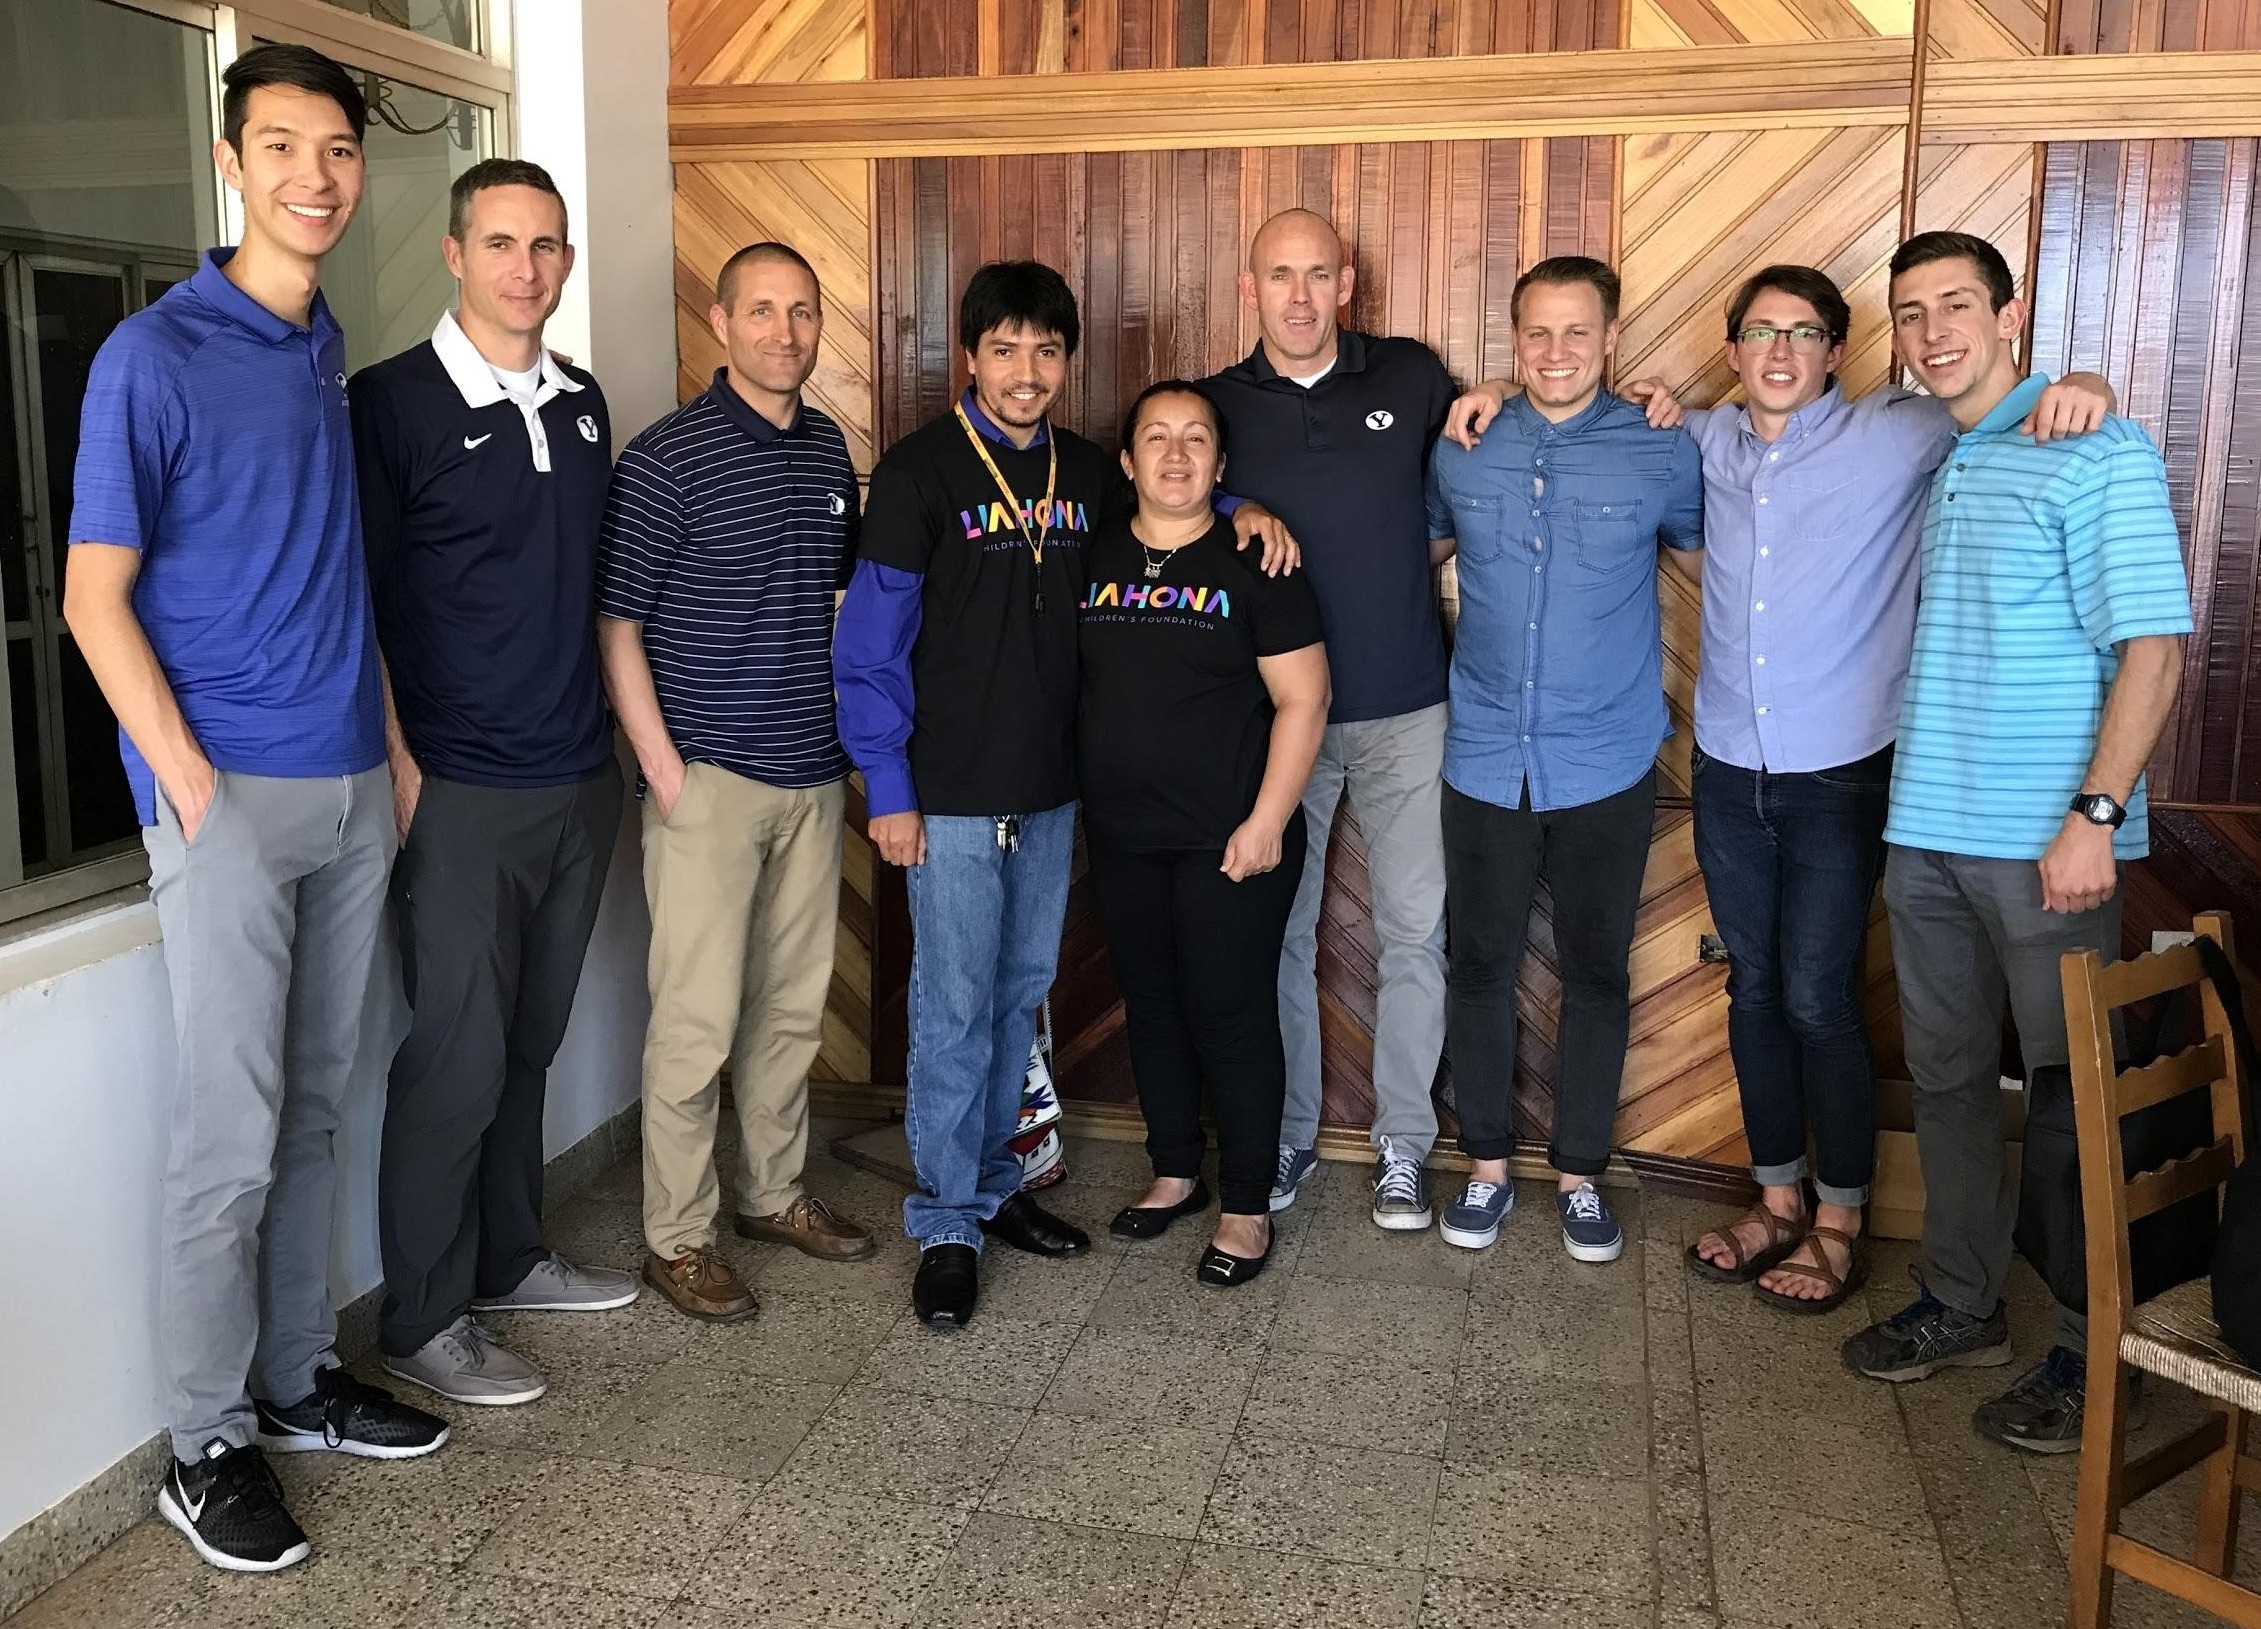 Paraguay-BYU-team-with-two-LCF-coordinators